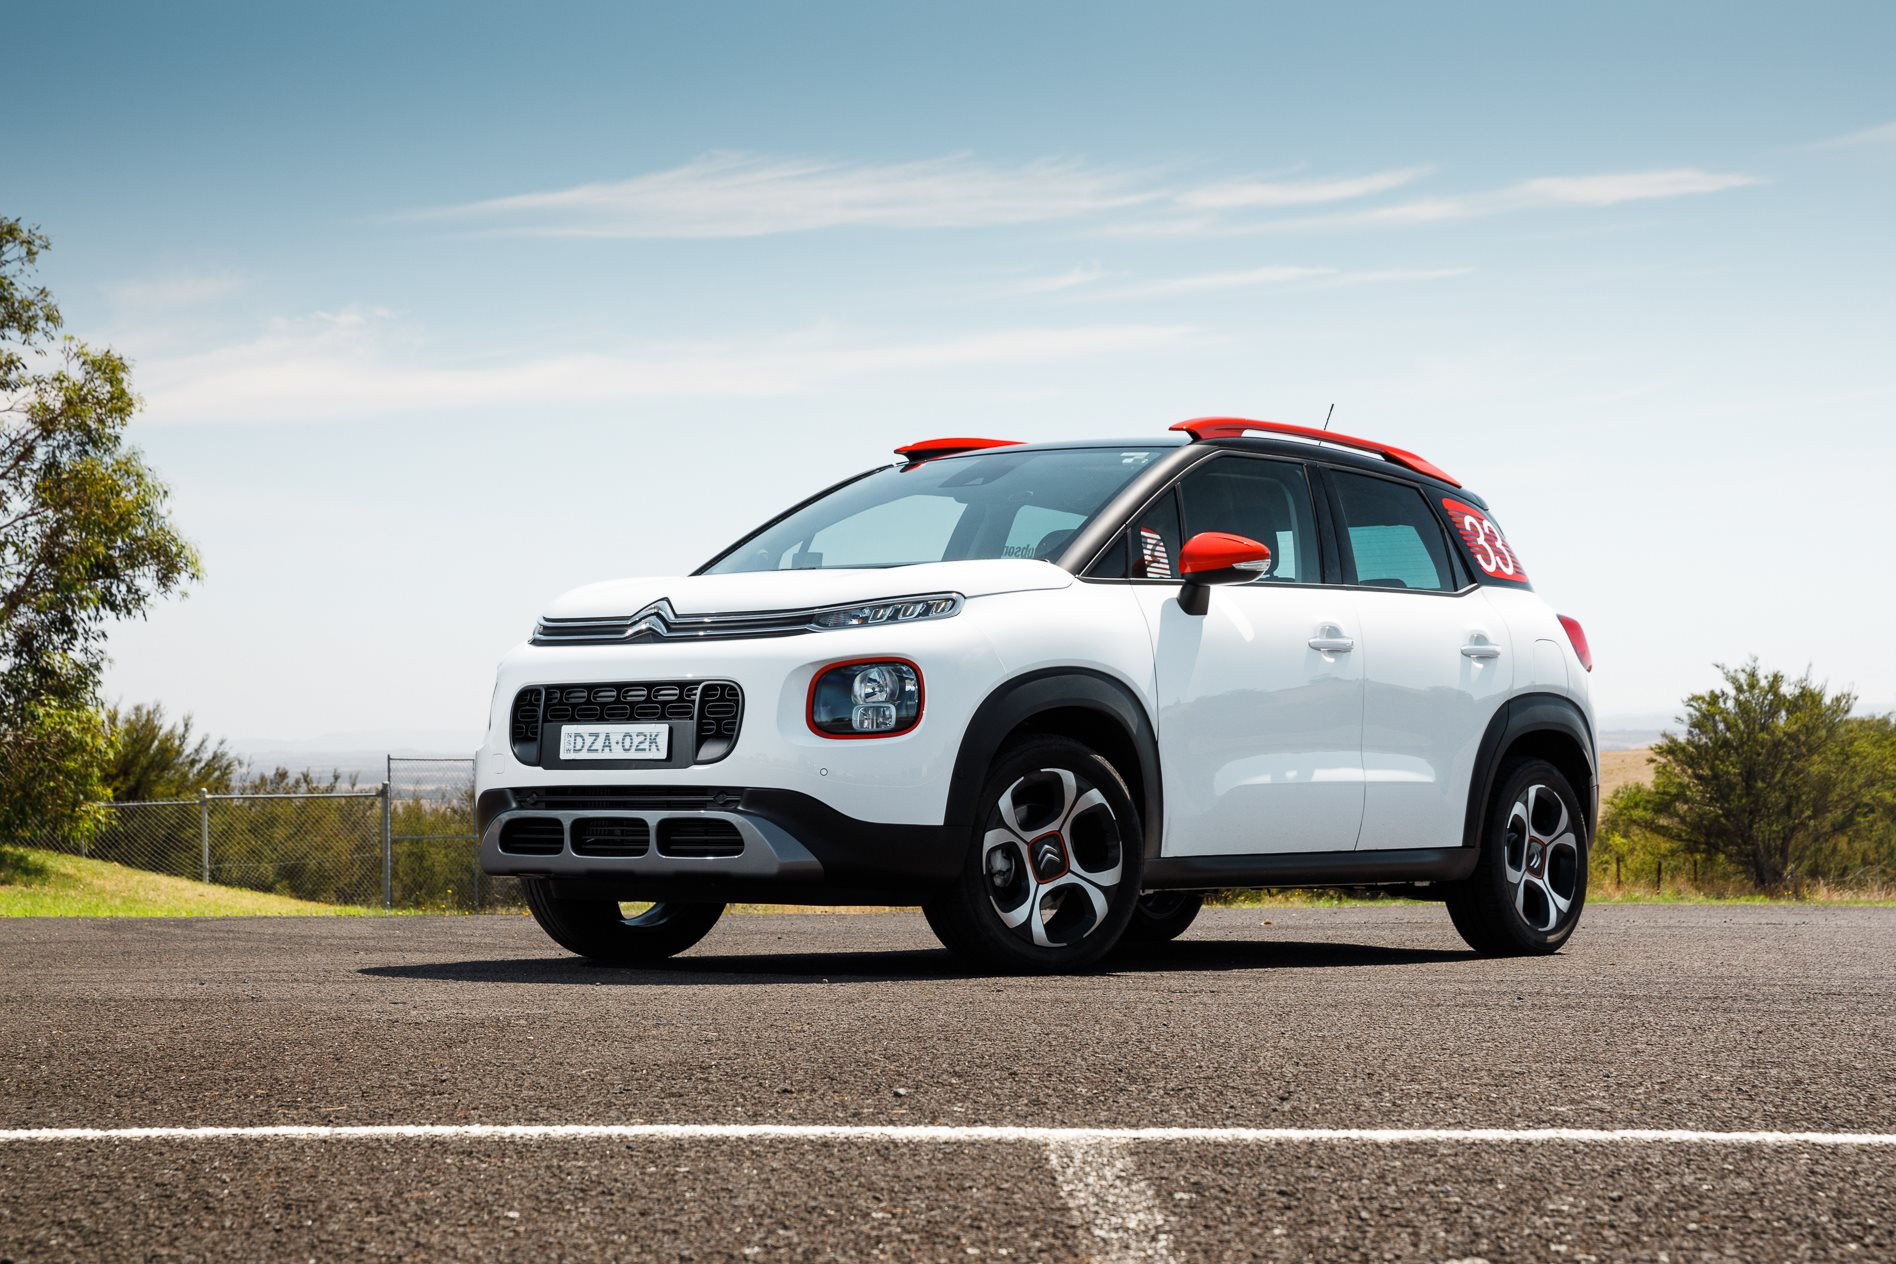 Performance Ford Nj >> 2019 Citroen C3 Aircross review